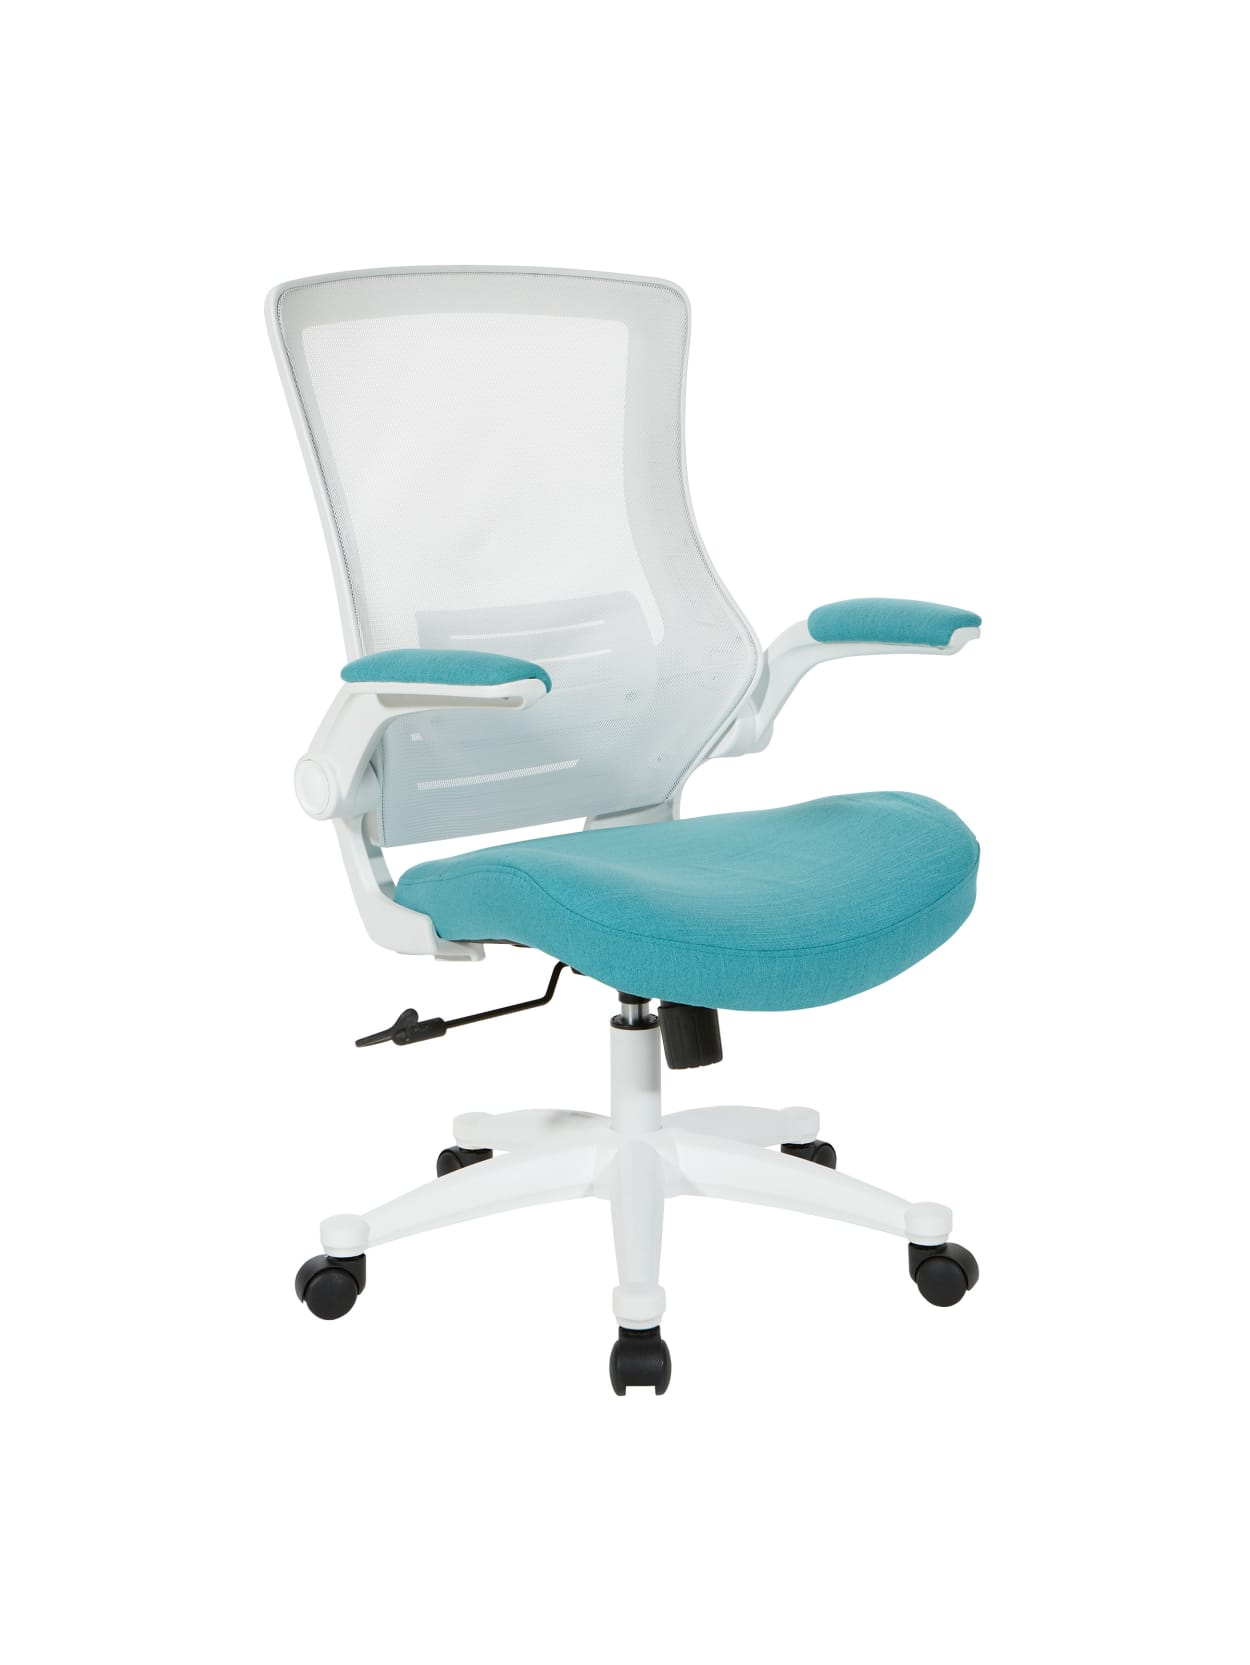 Image of: Office Star Manager Chair Turquoise Office Depot